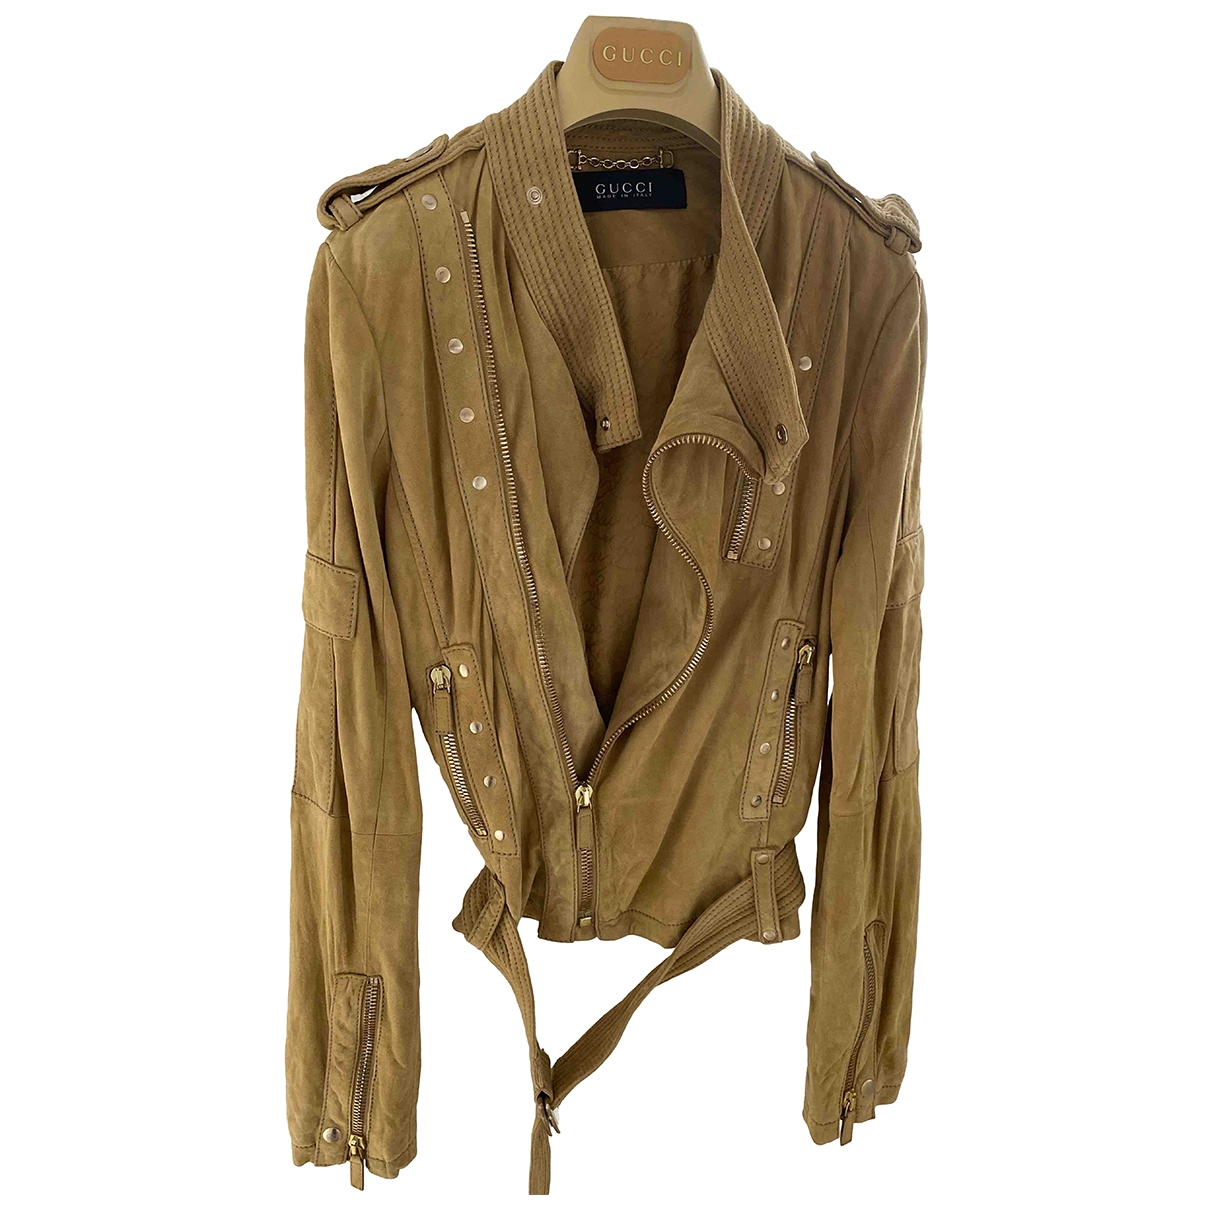 Gucci N Beige Suede Leather jacket for Women 42 IT